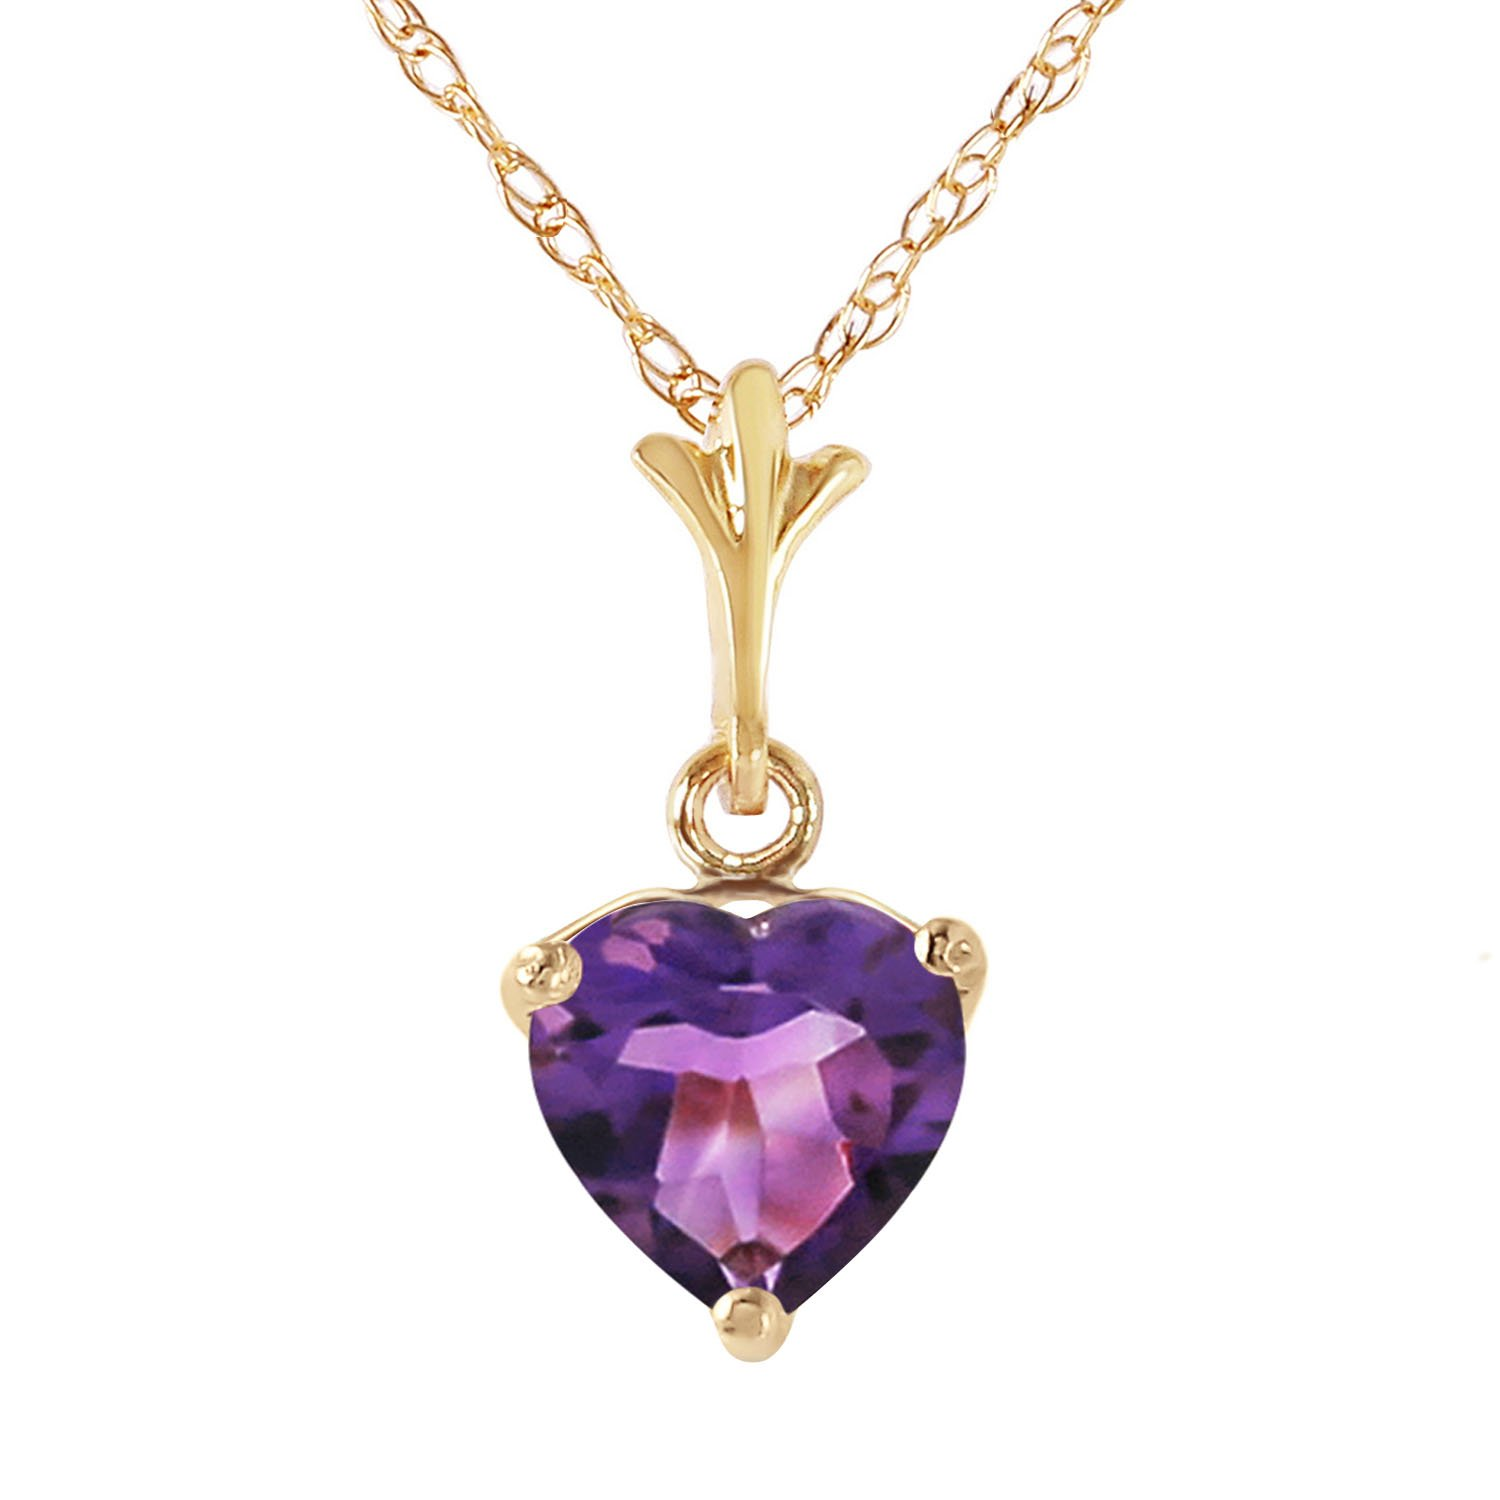 1.15 Carat 14k Solid Gold Heart-shaped Natural Purple Amethyst Pendant Necklace